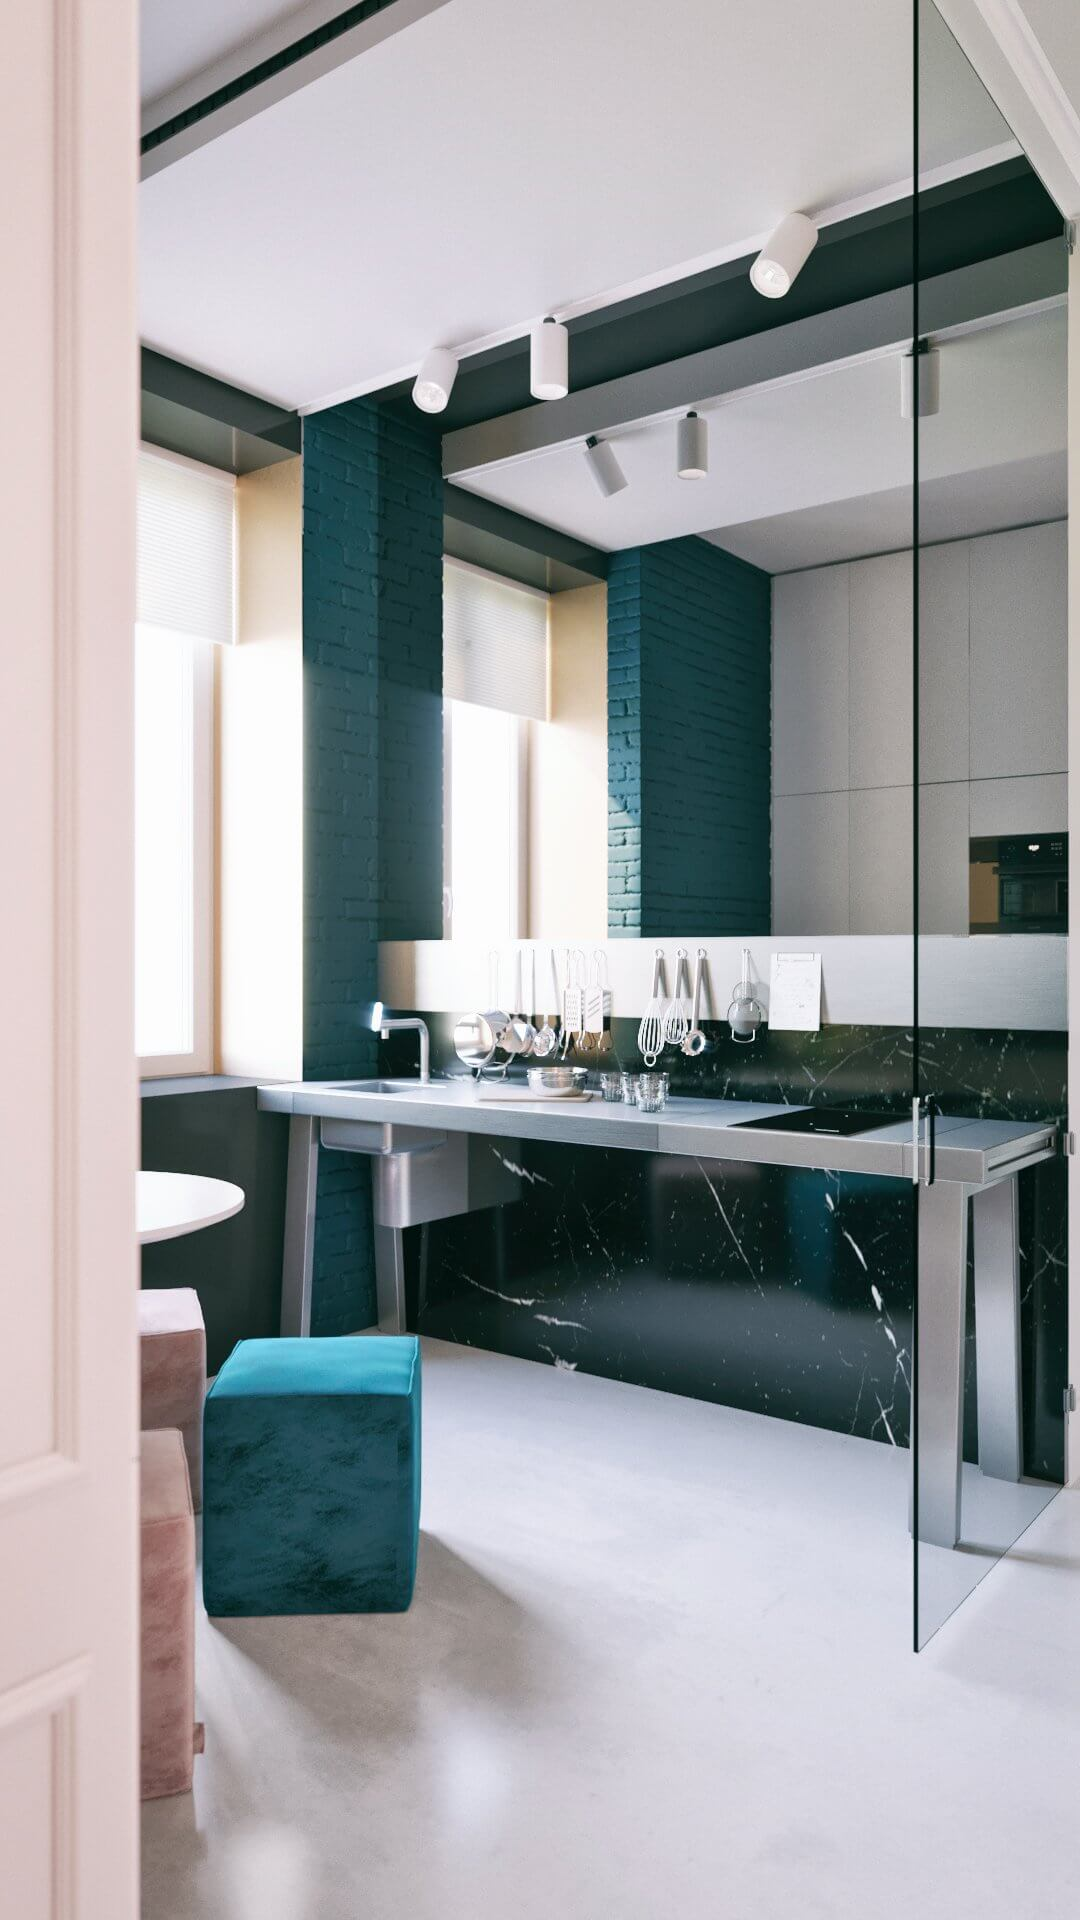 Apartment in Kiev kitchen stainless steel top - cgi visualization